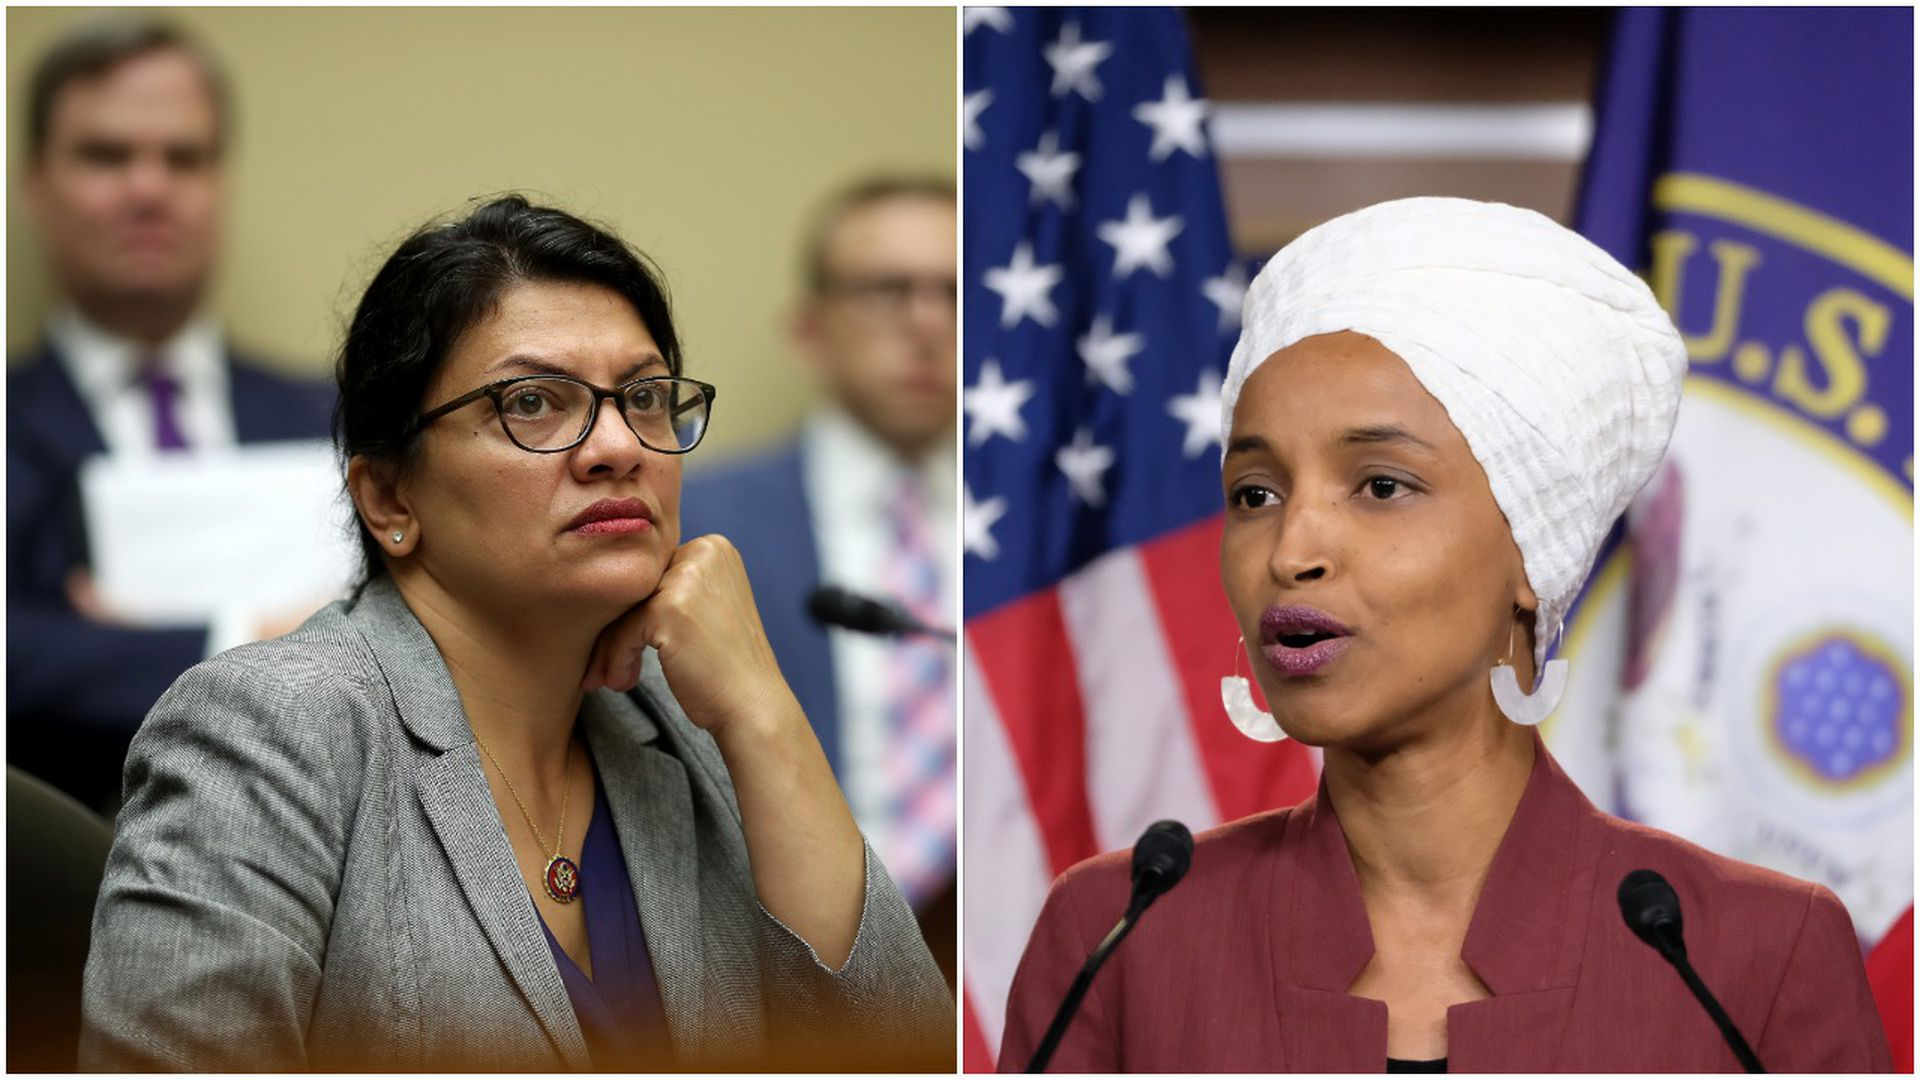 Israel to allow Reps. Ilhan Omar and Rashida Tlaib to enter the country